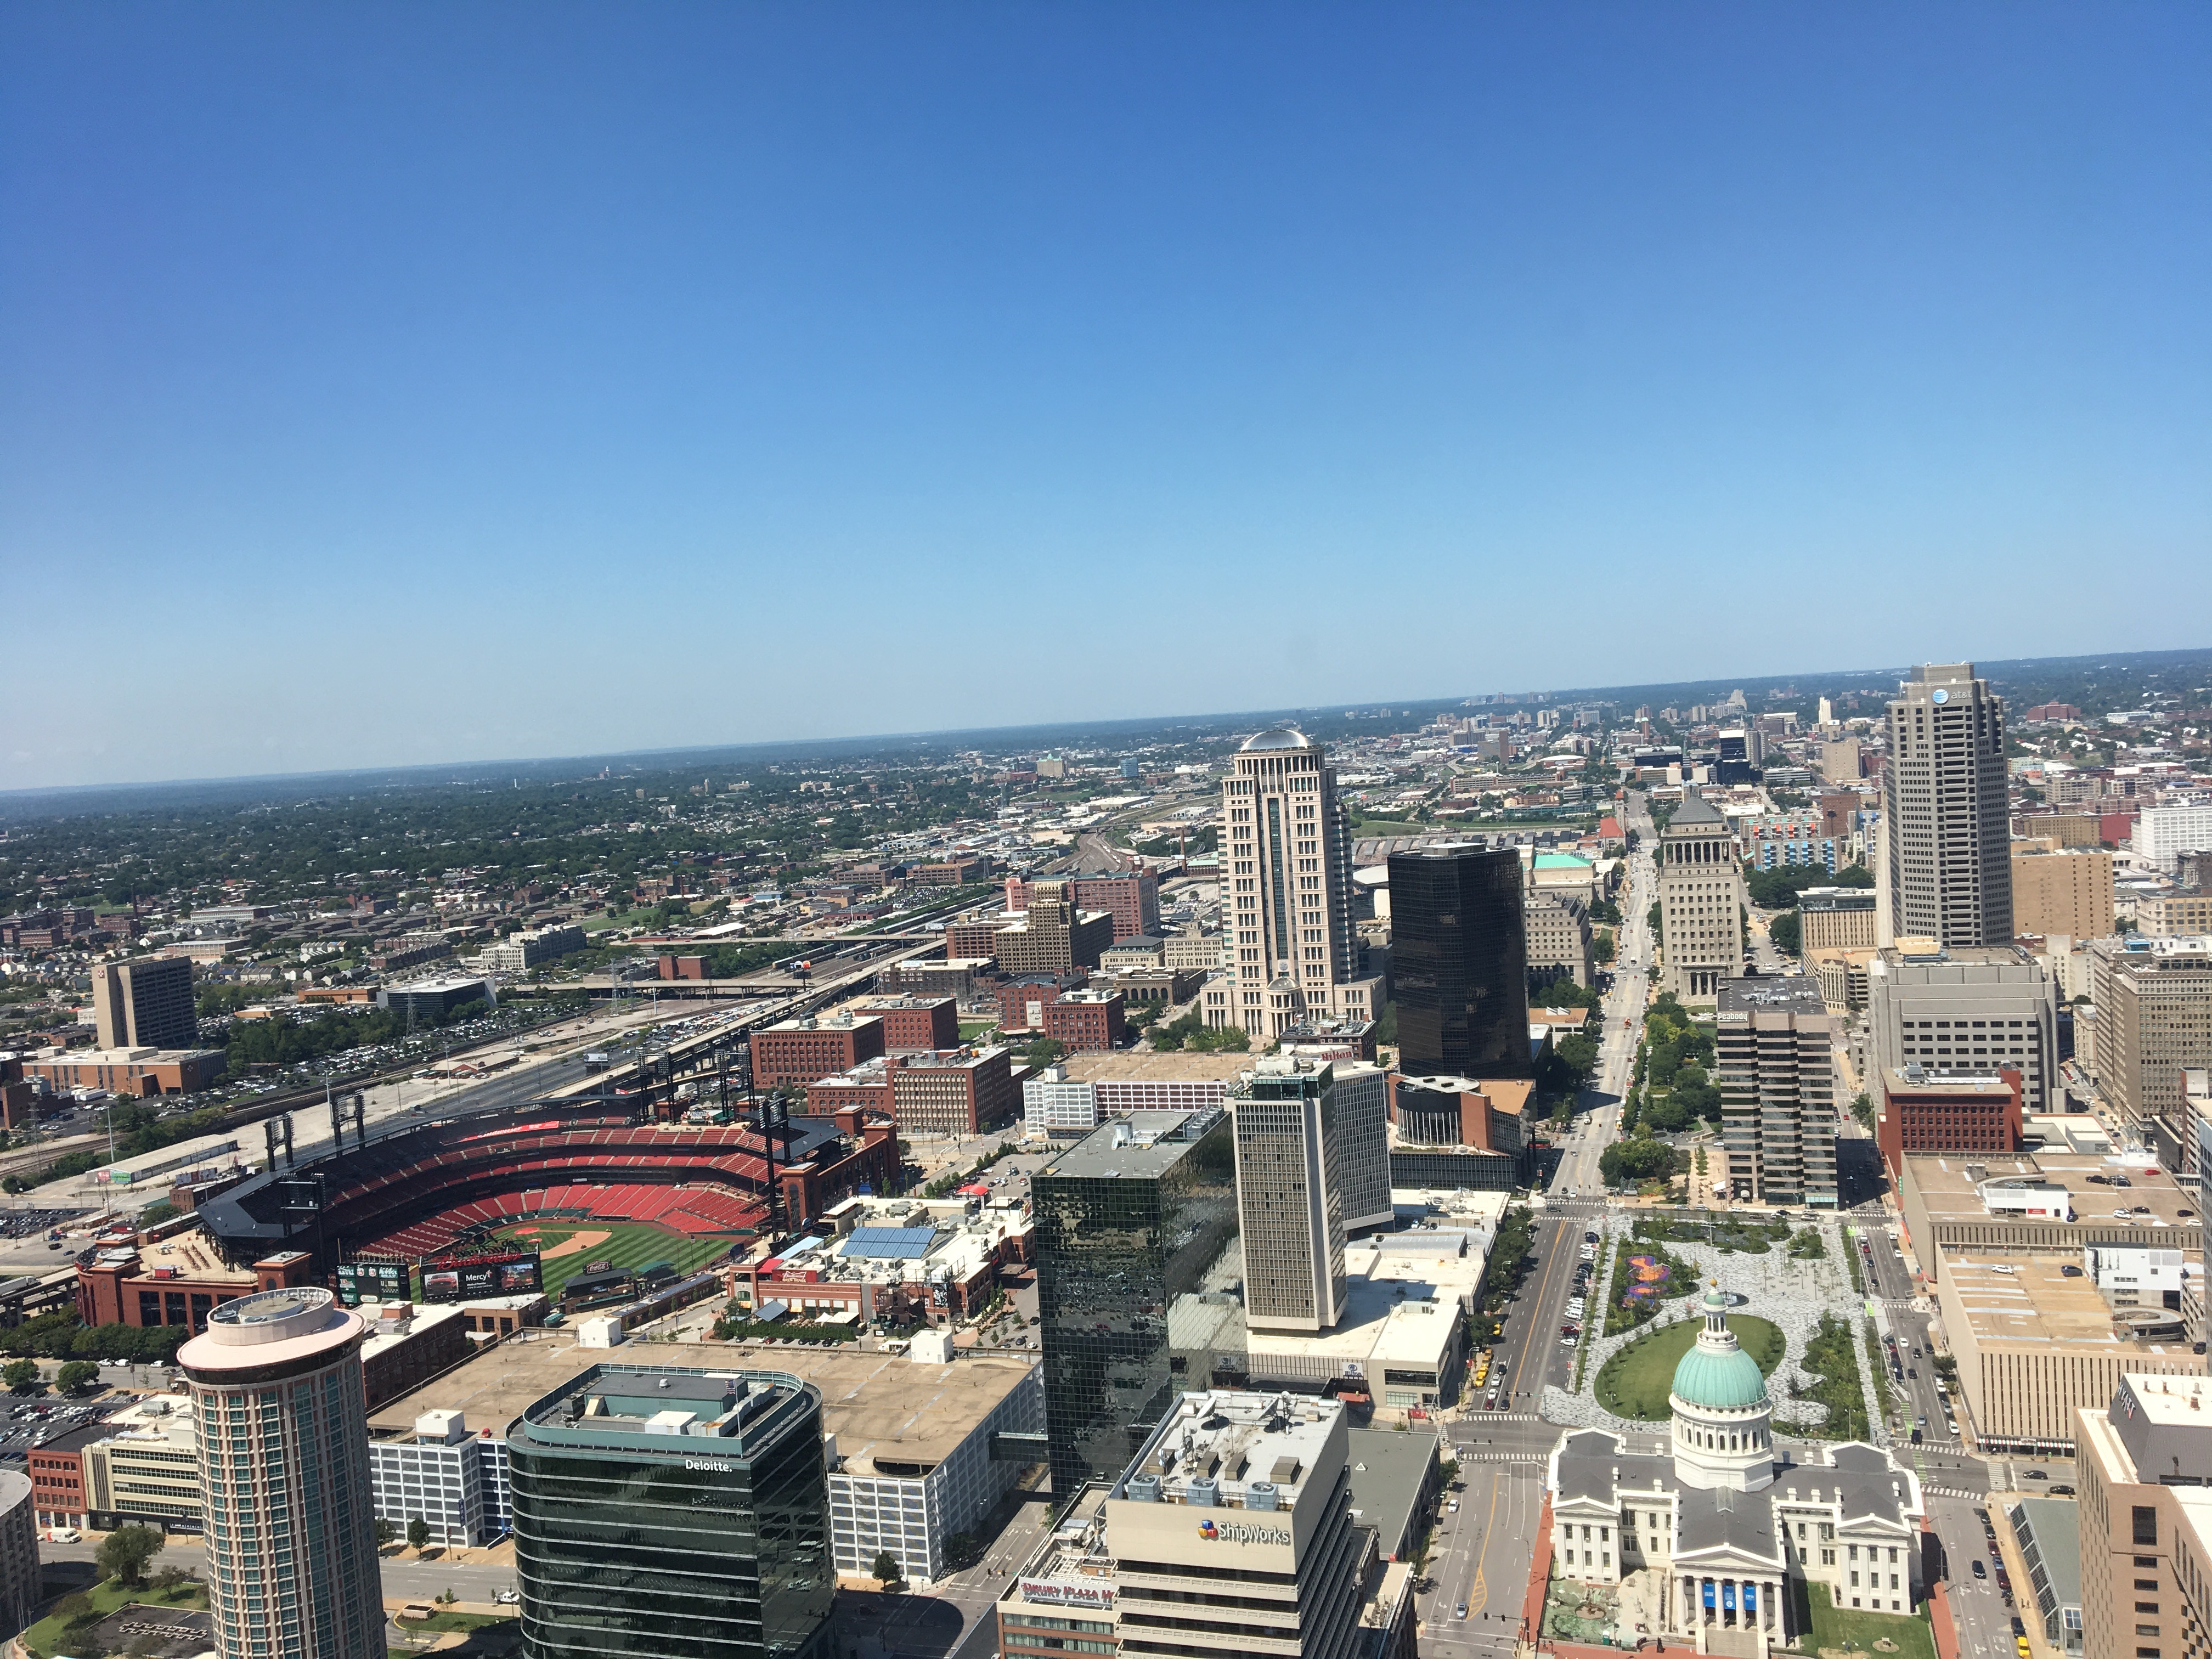 A view from the top of the Saint Louis Gateway